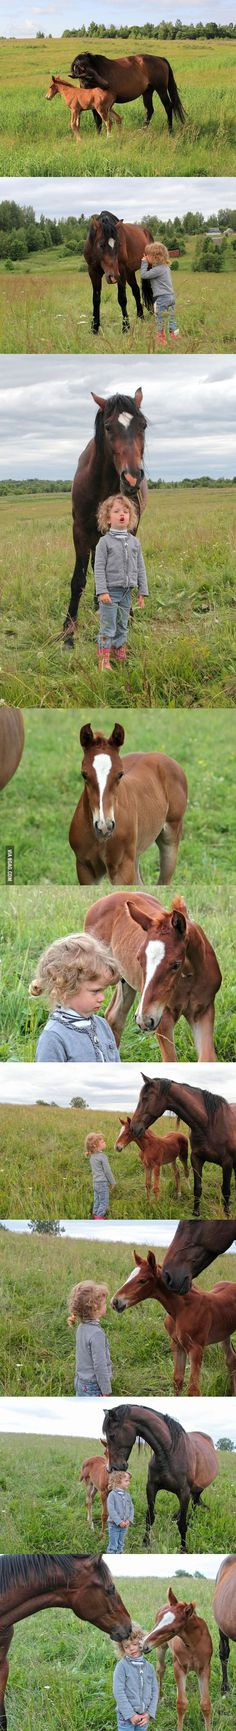 Little girl asks mare to be friends